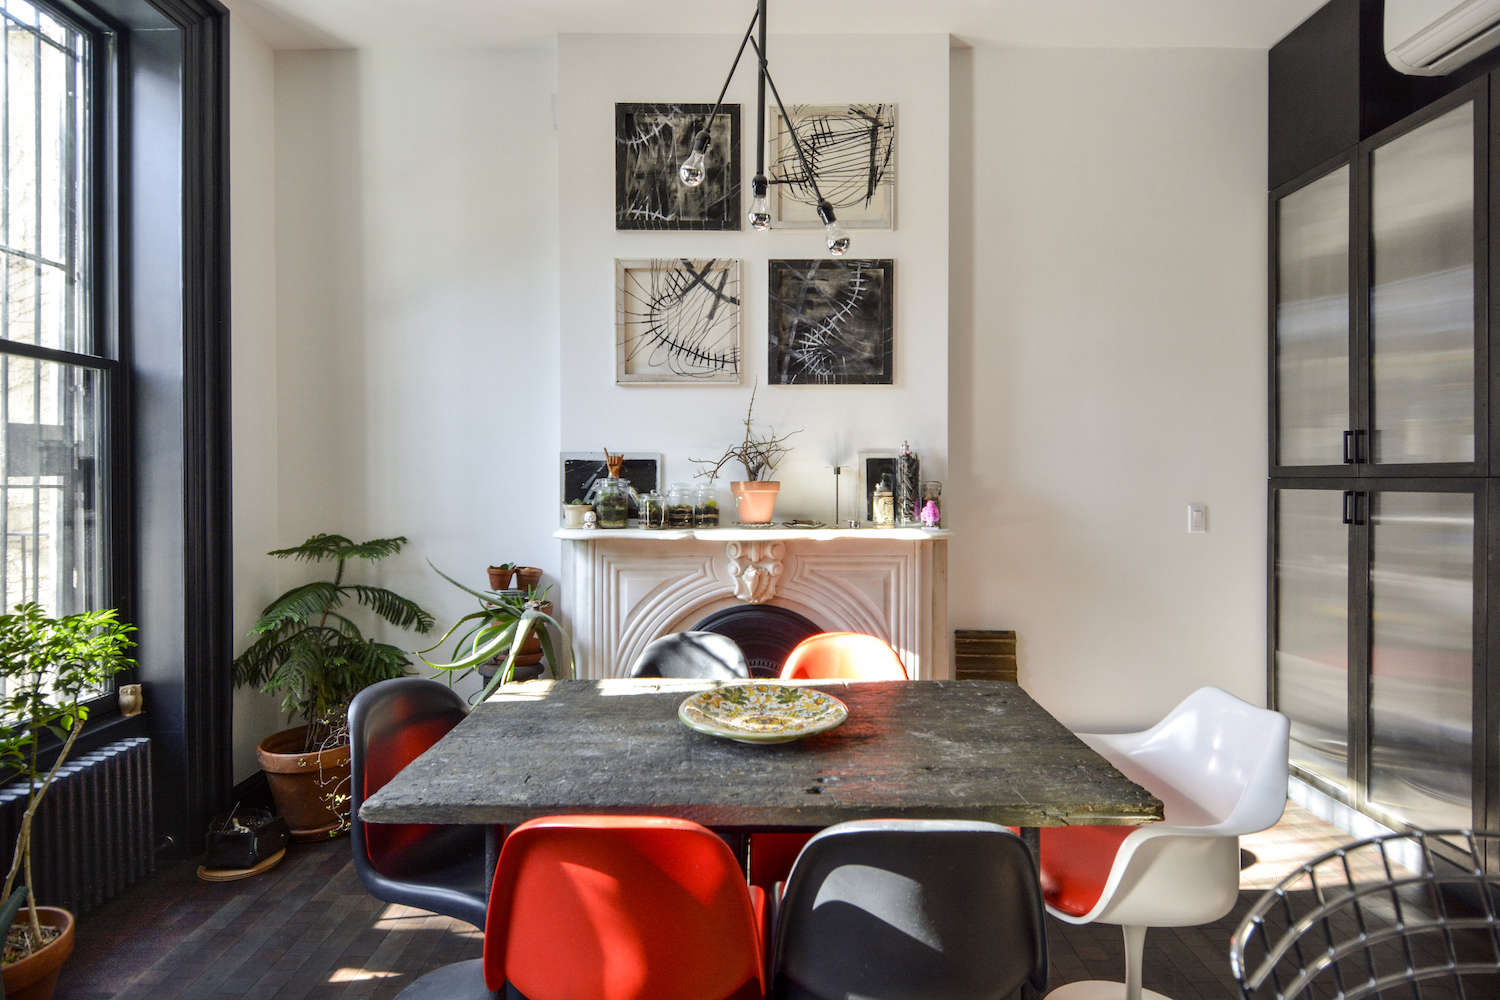 architects gregory merkel and catalina rojas's remodeled brooklyn townhouse | r 14